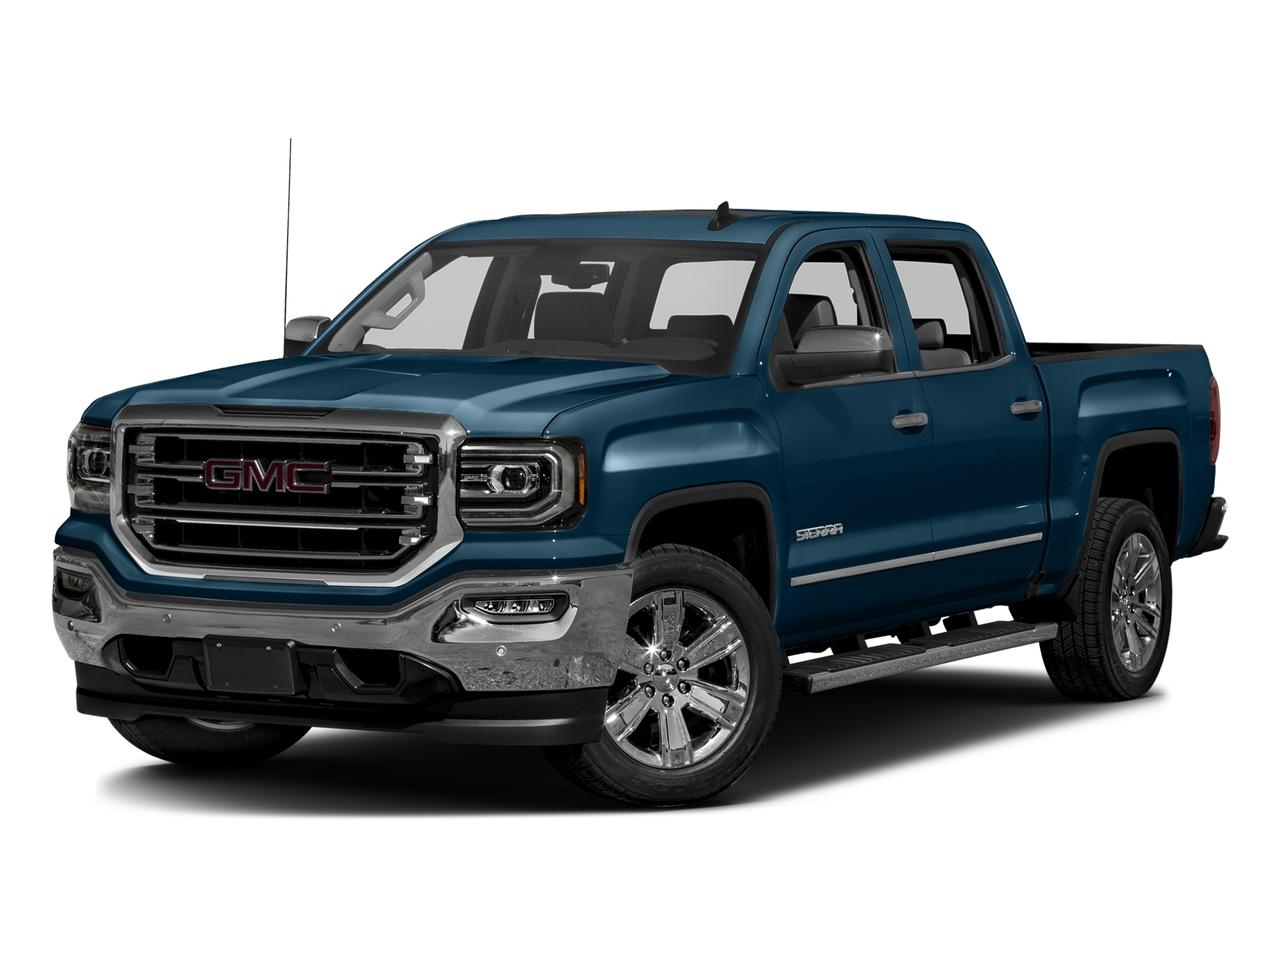 2018 GMC Sierra 1500 Vehicle Photo in Austin, TX 78759